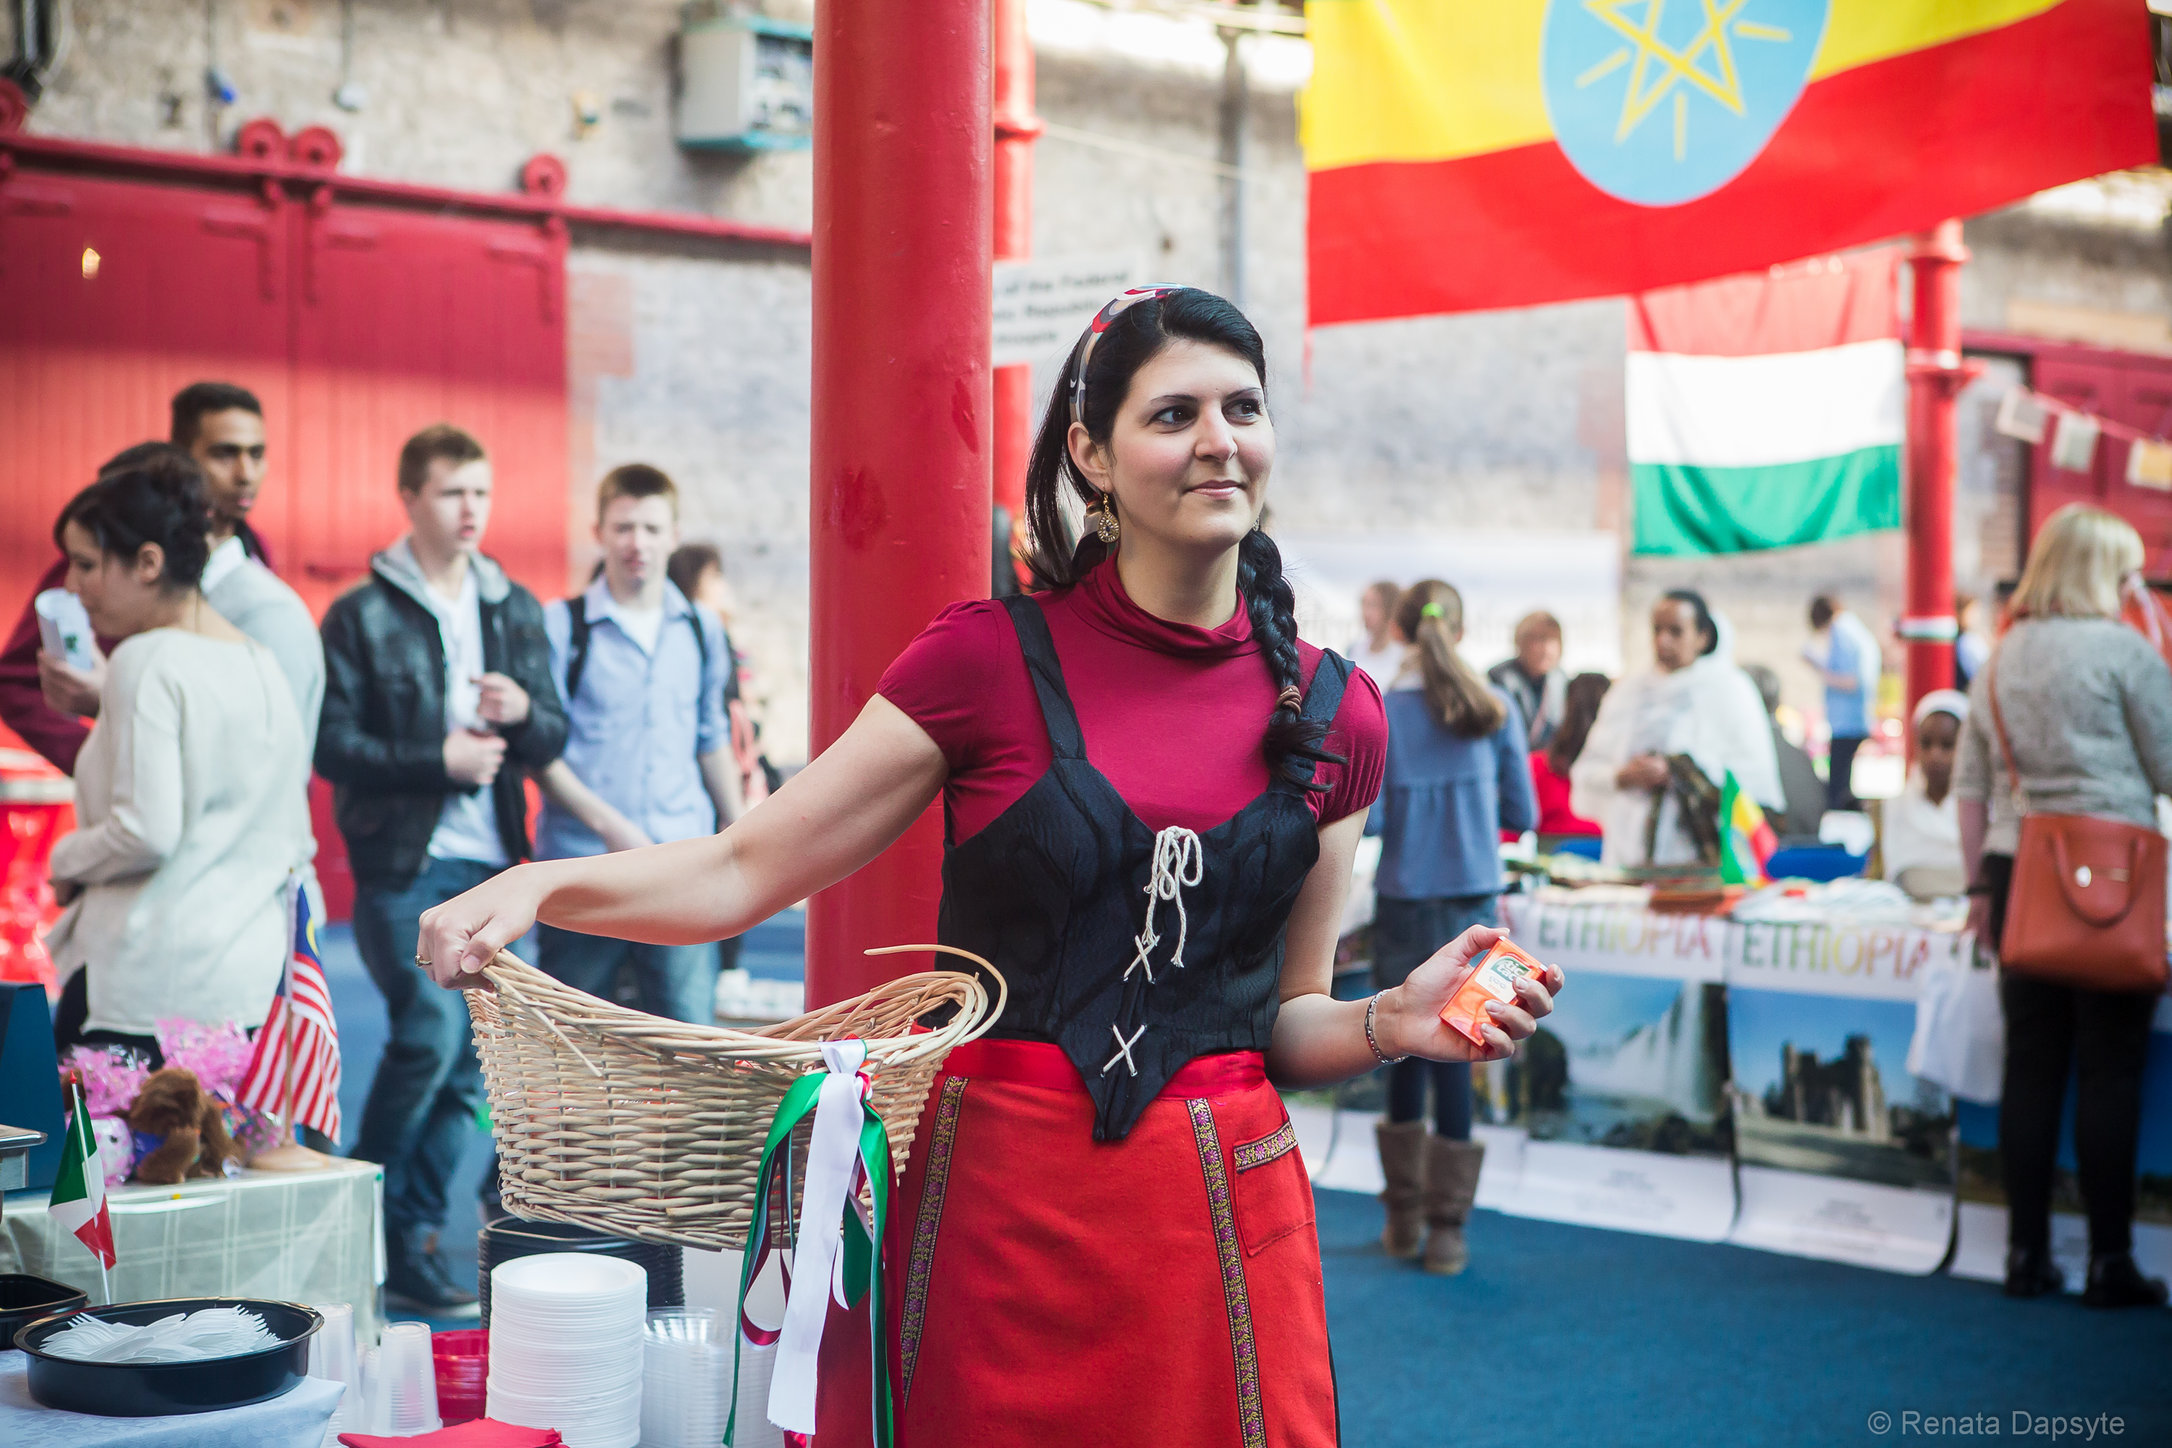 017_International Charity Bazaar Dublin 2013.JPG